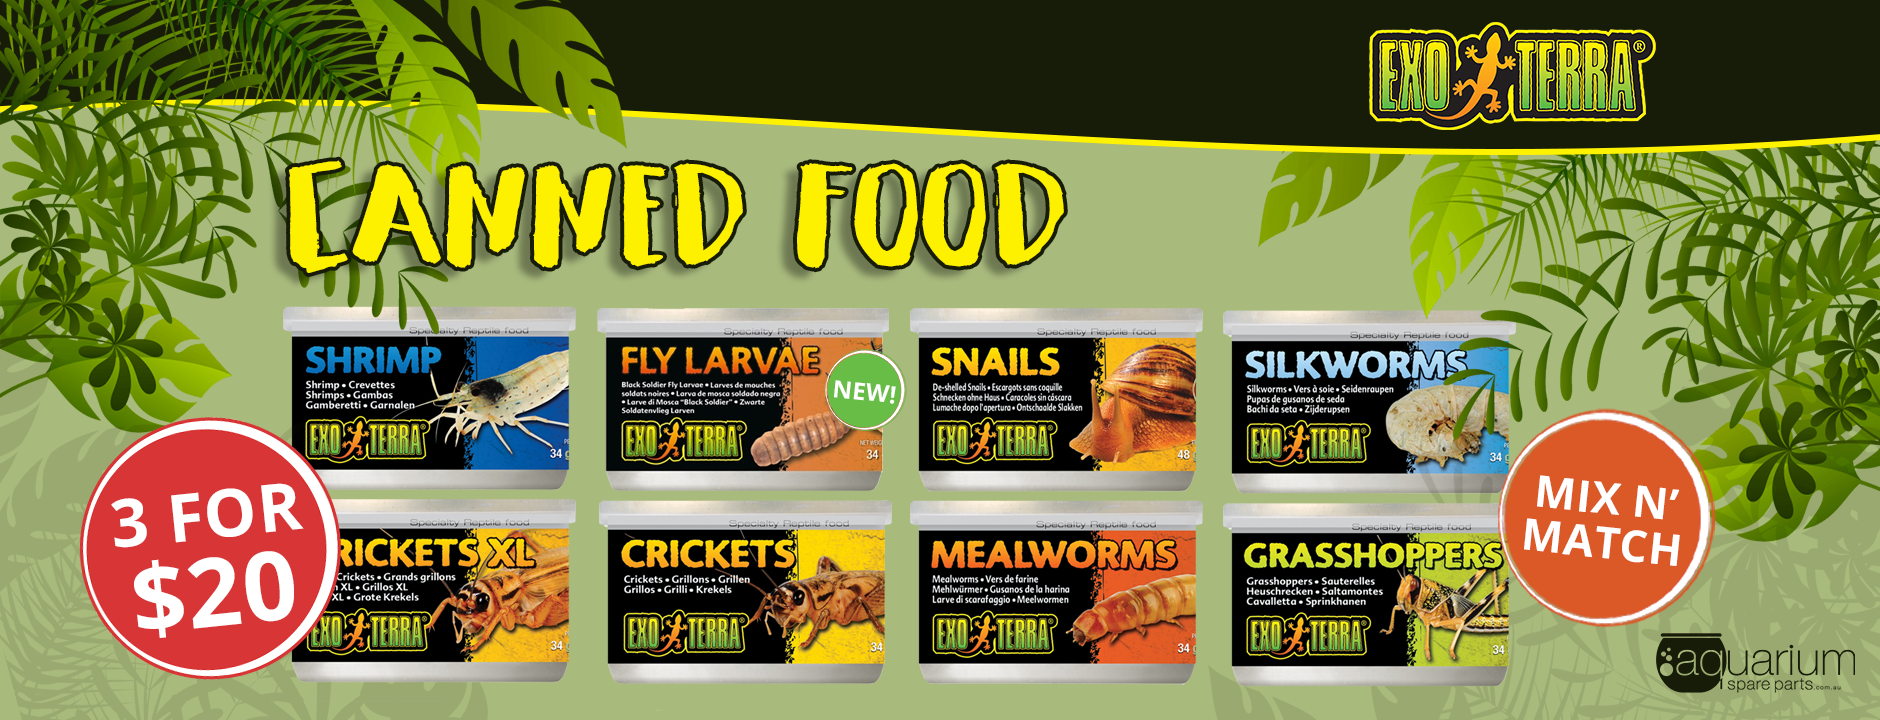 exoterra-canned-food-web-banner.png